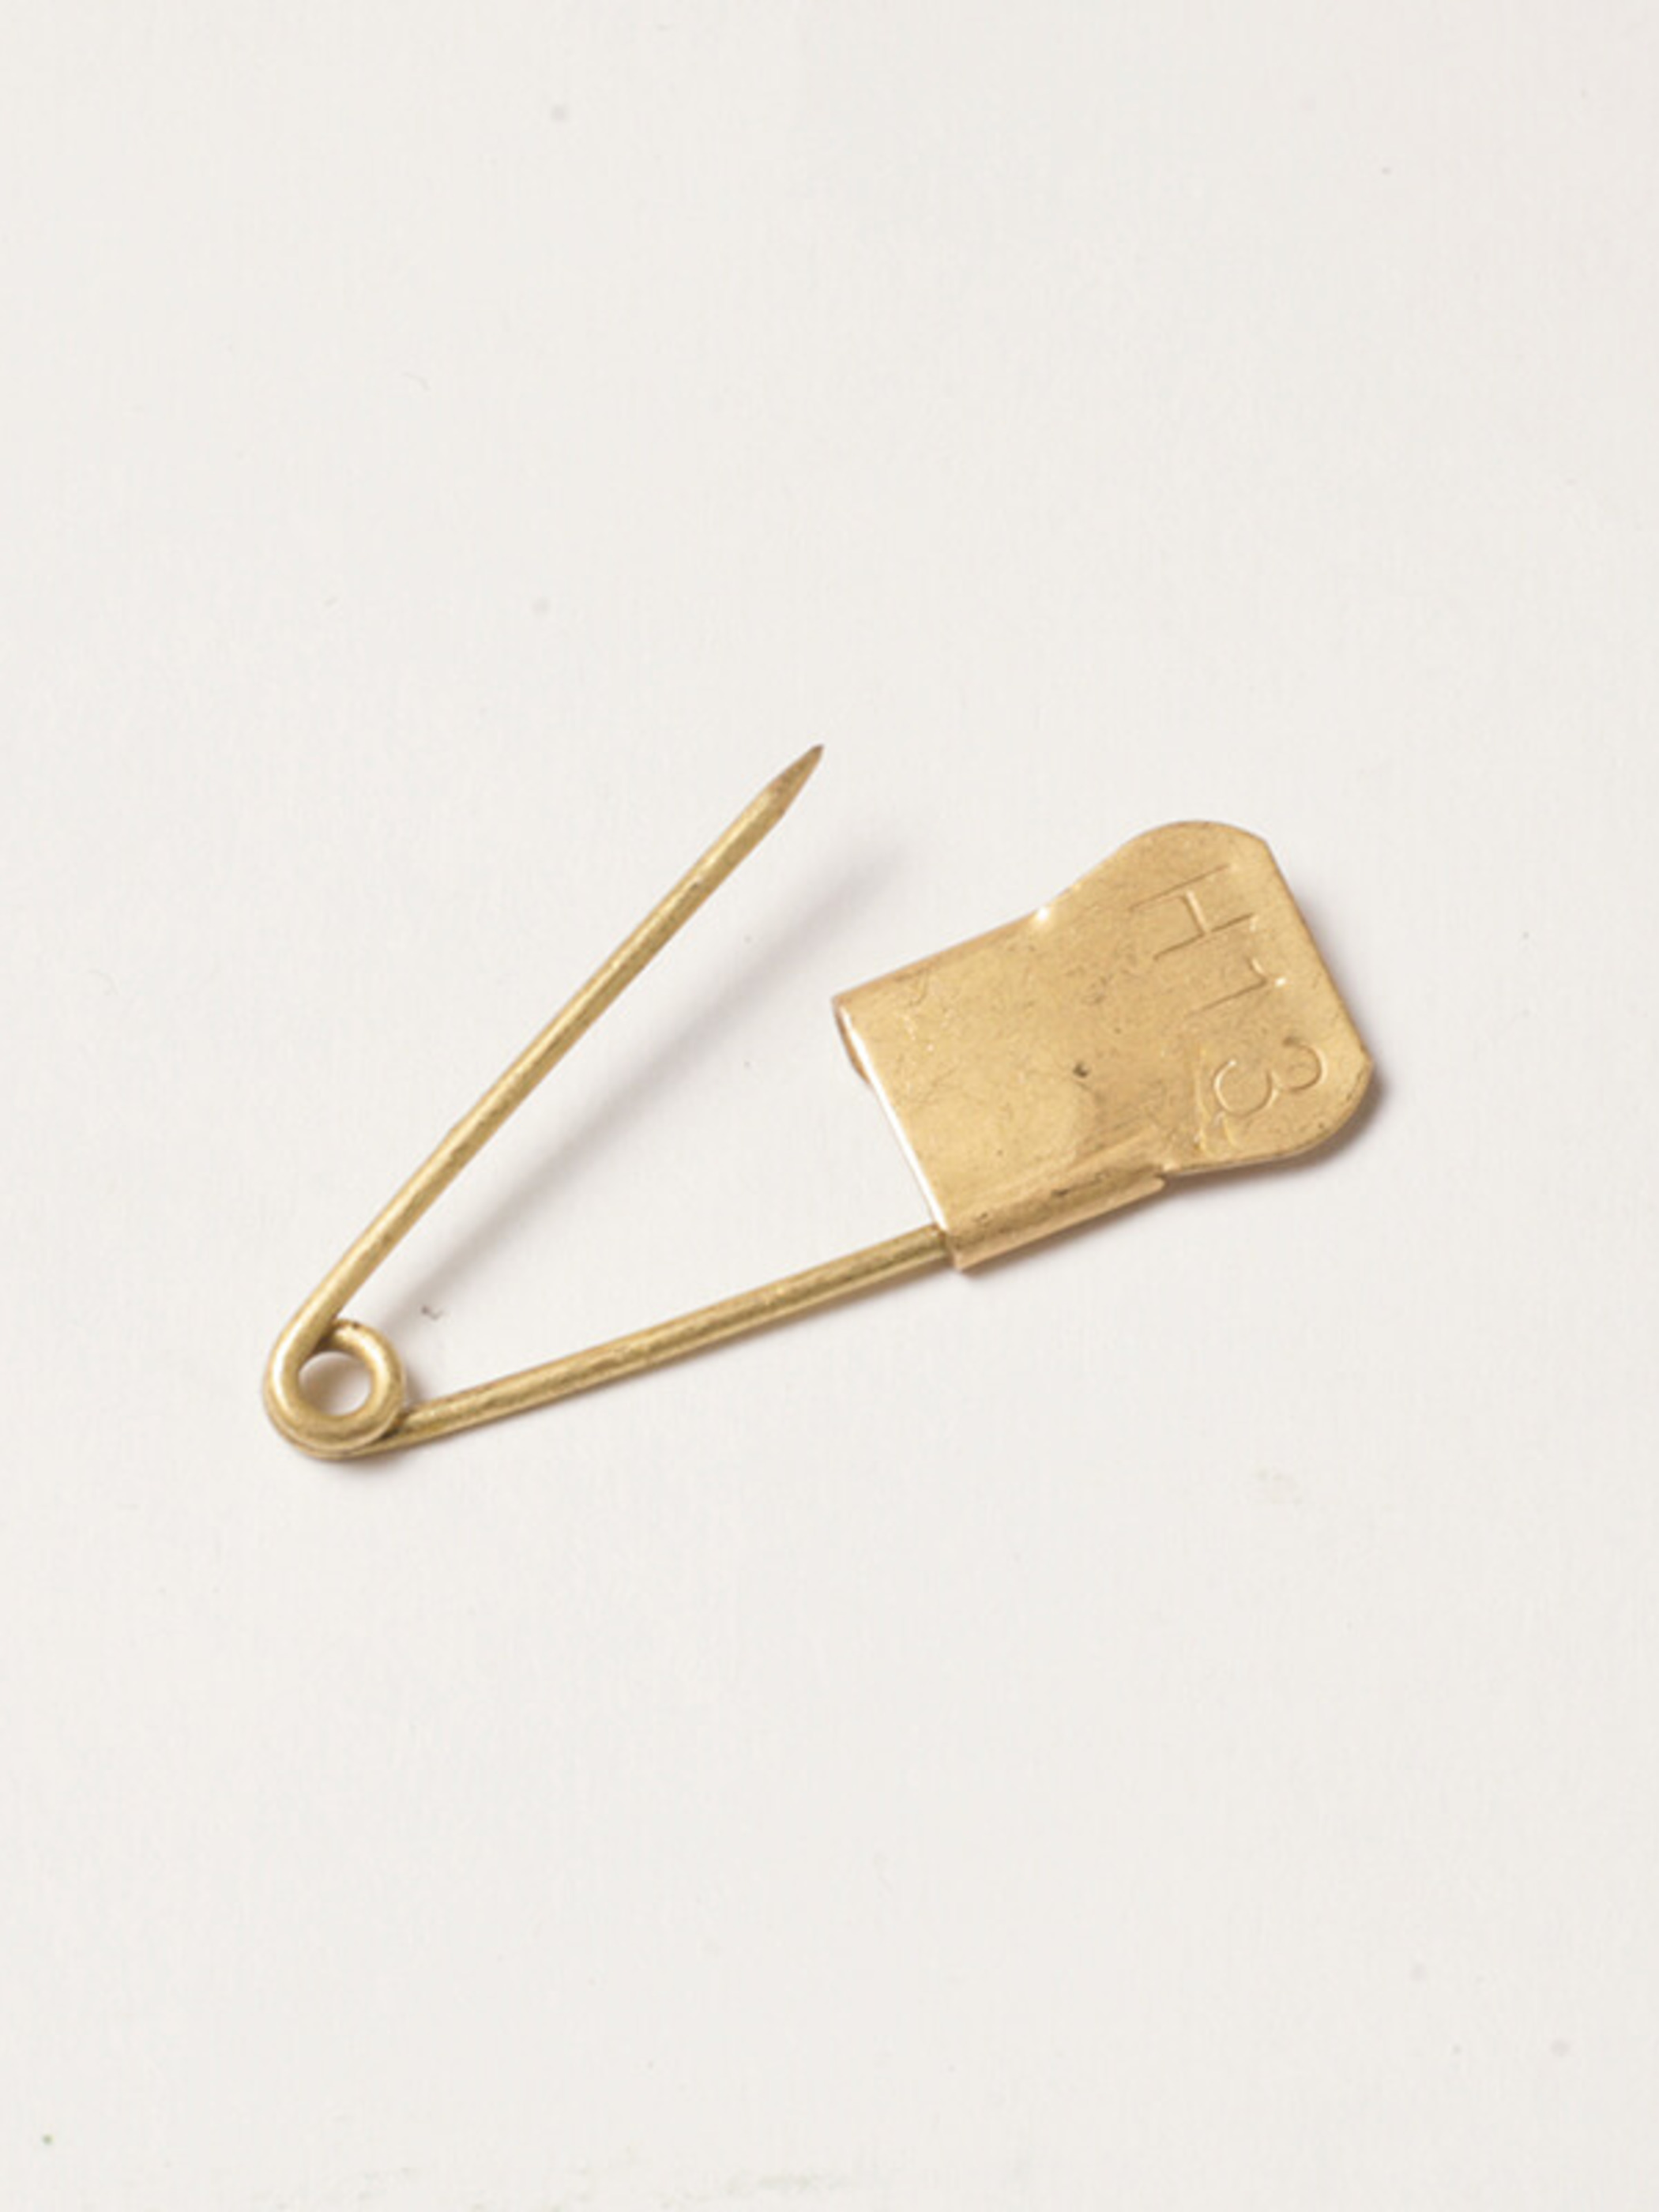 US Military / 1960's Deadstock / Brass Pin